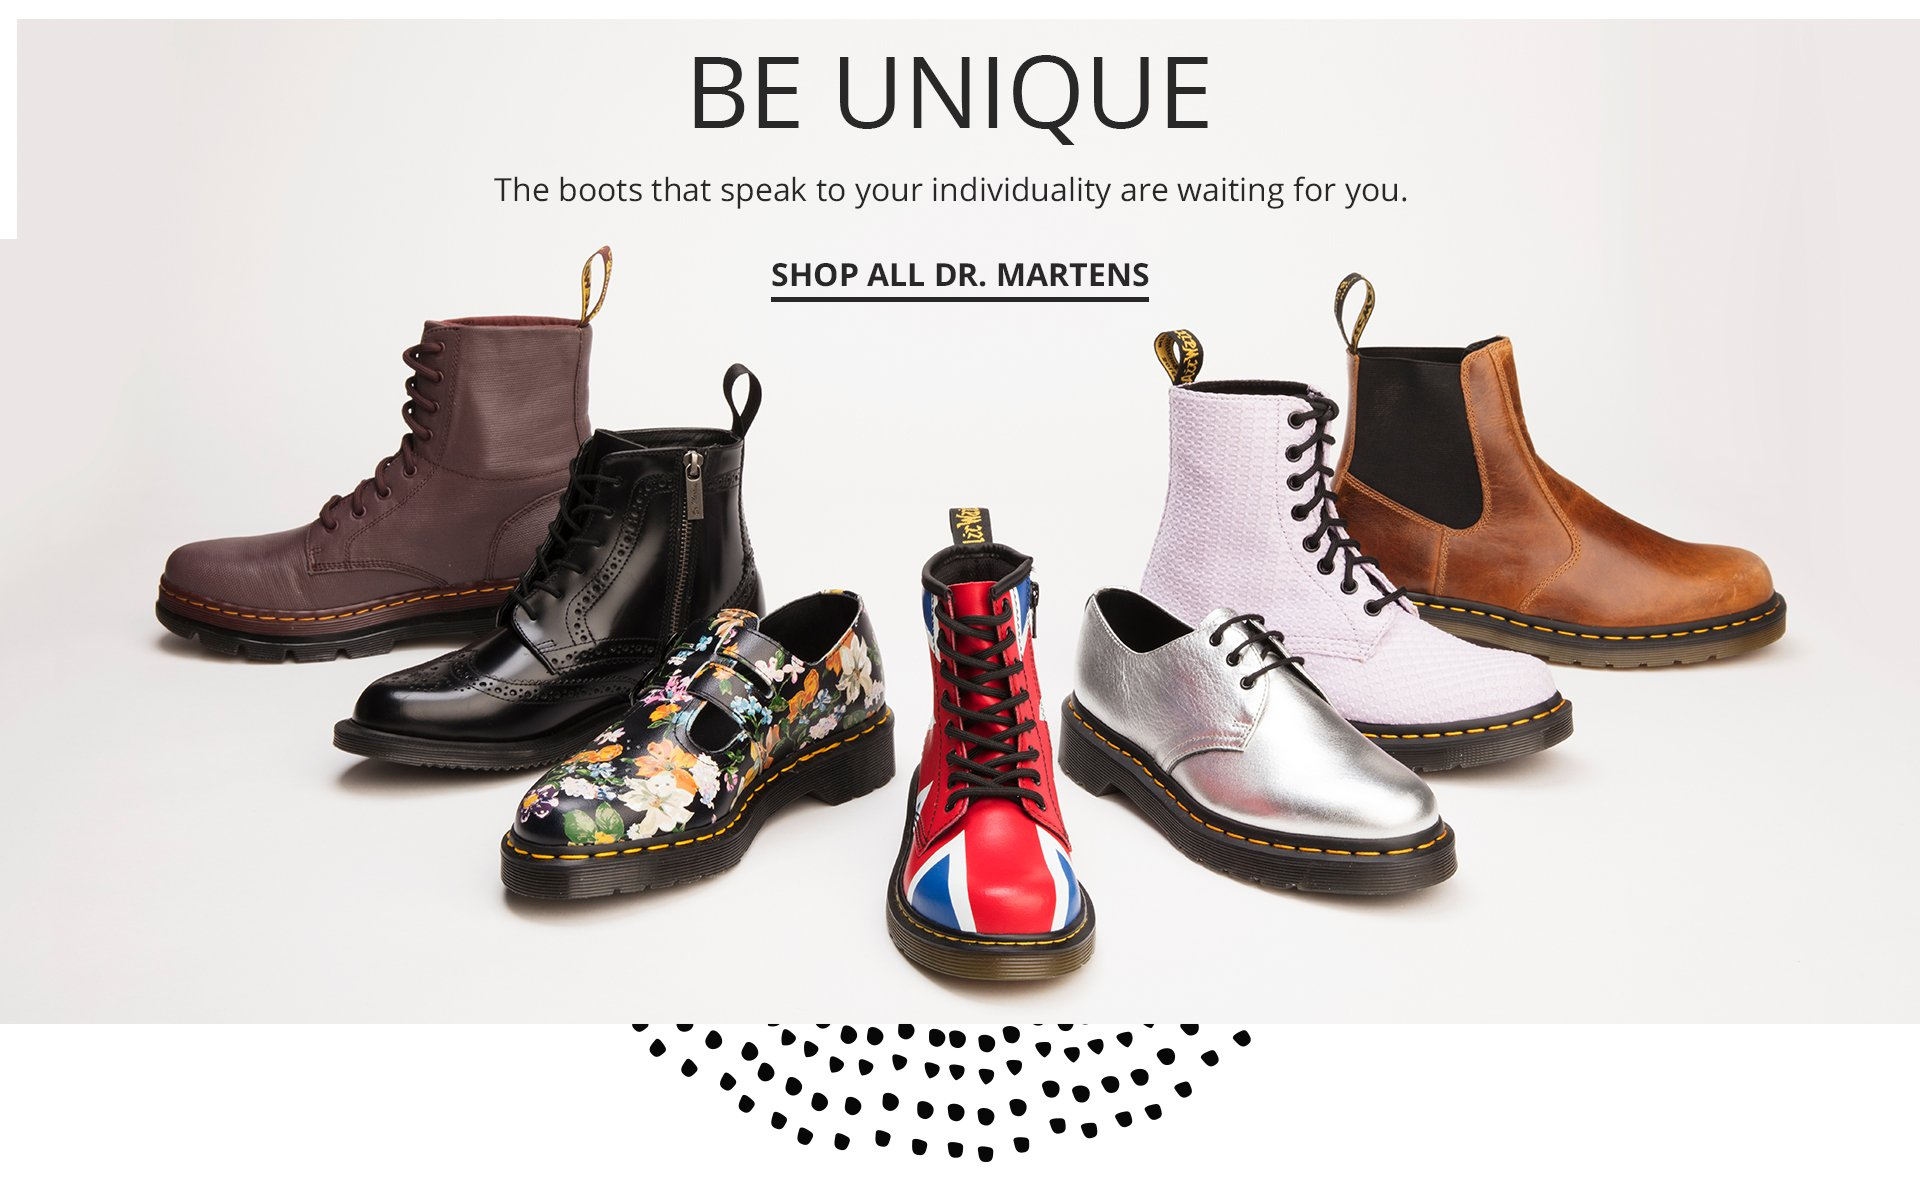 Shop all Dr. Martens